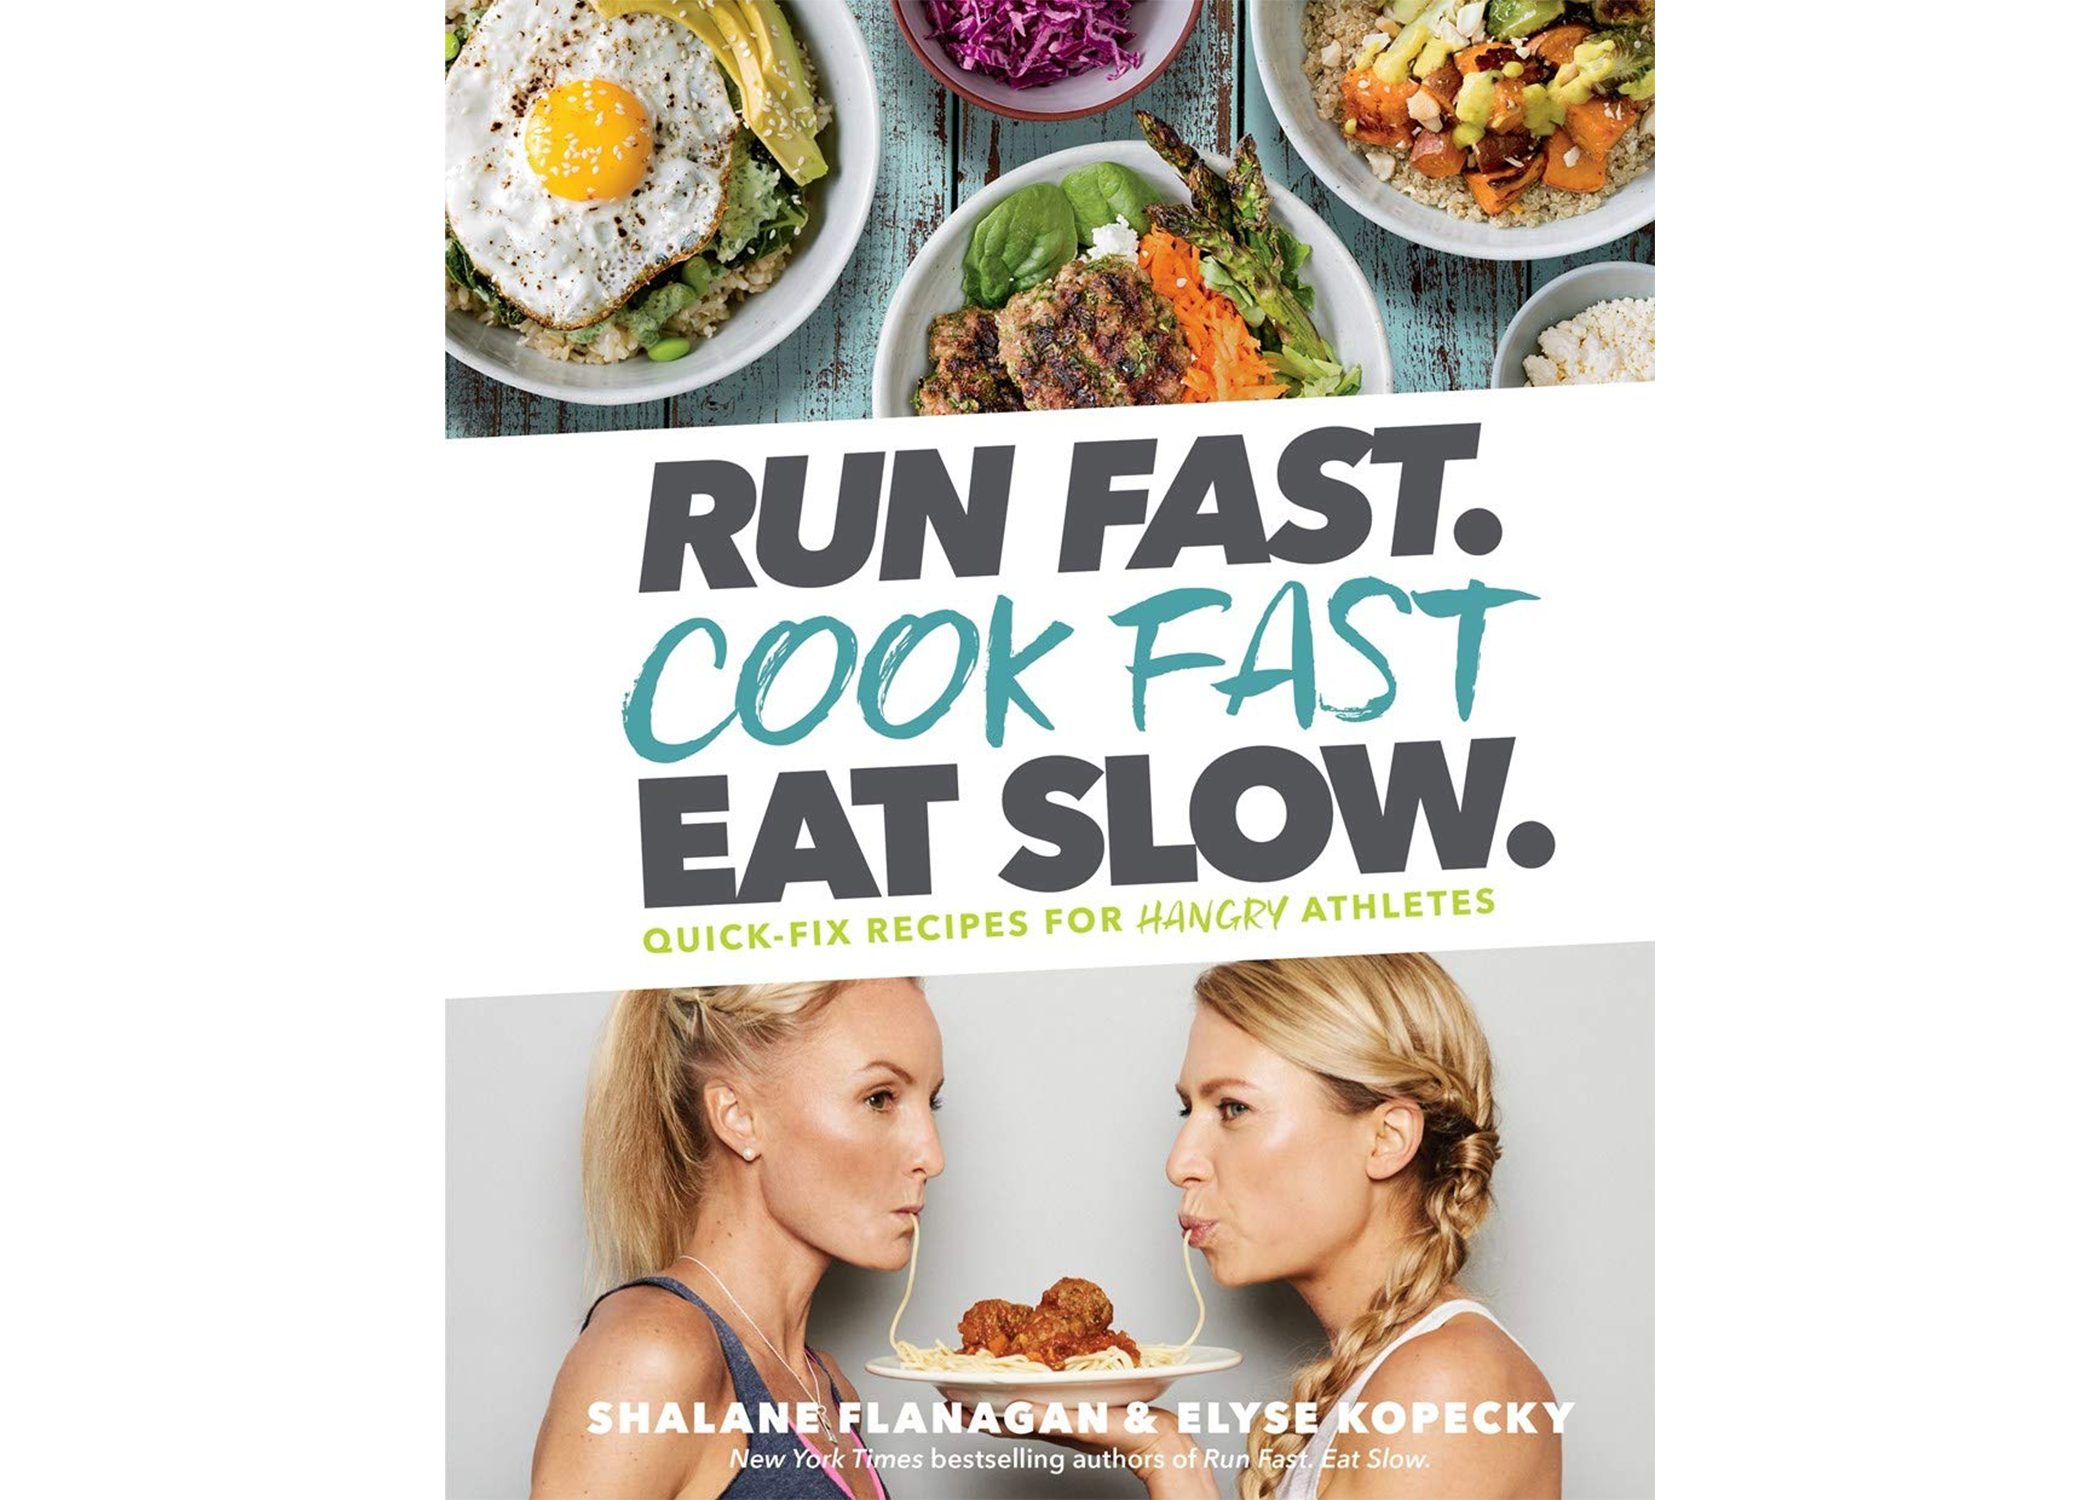 run fast cook fast eat slow.jpg